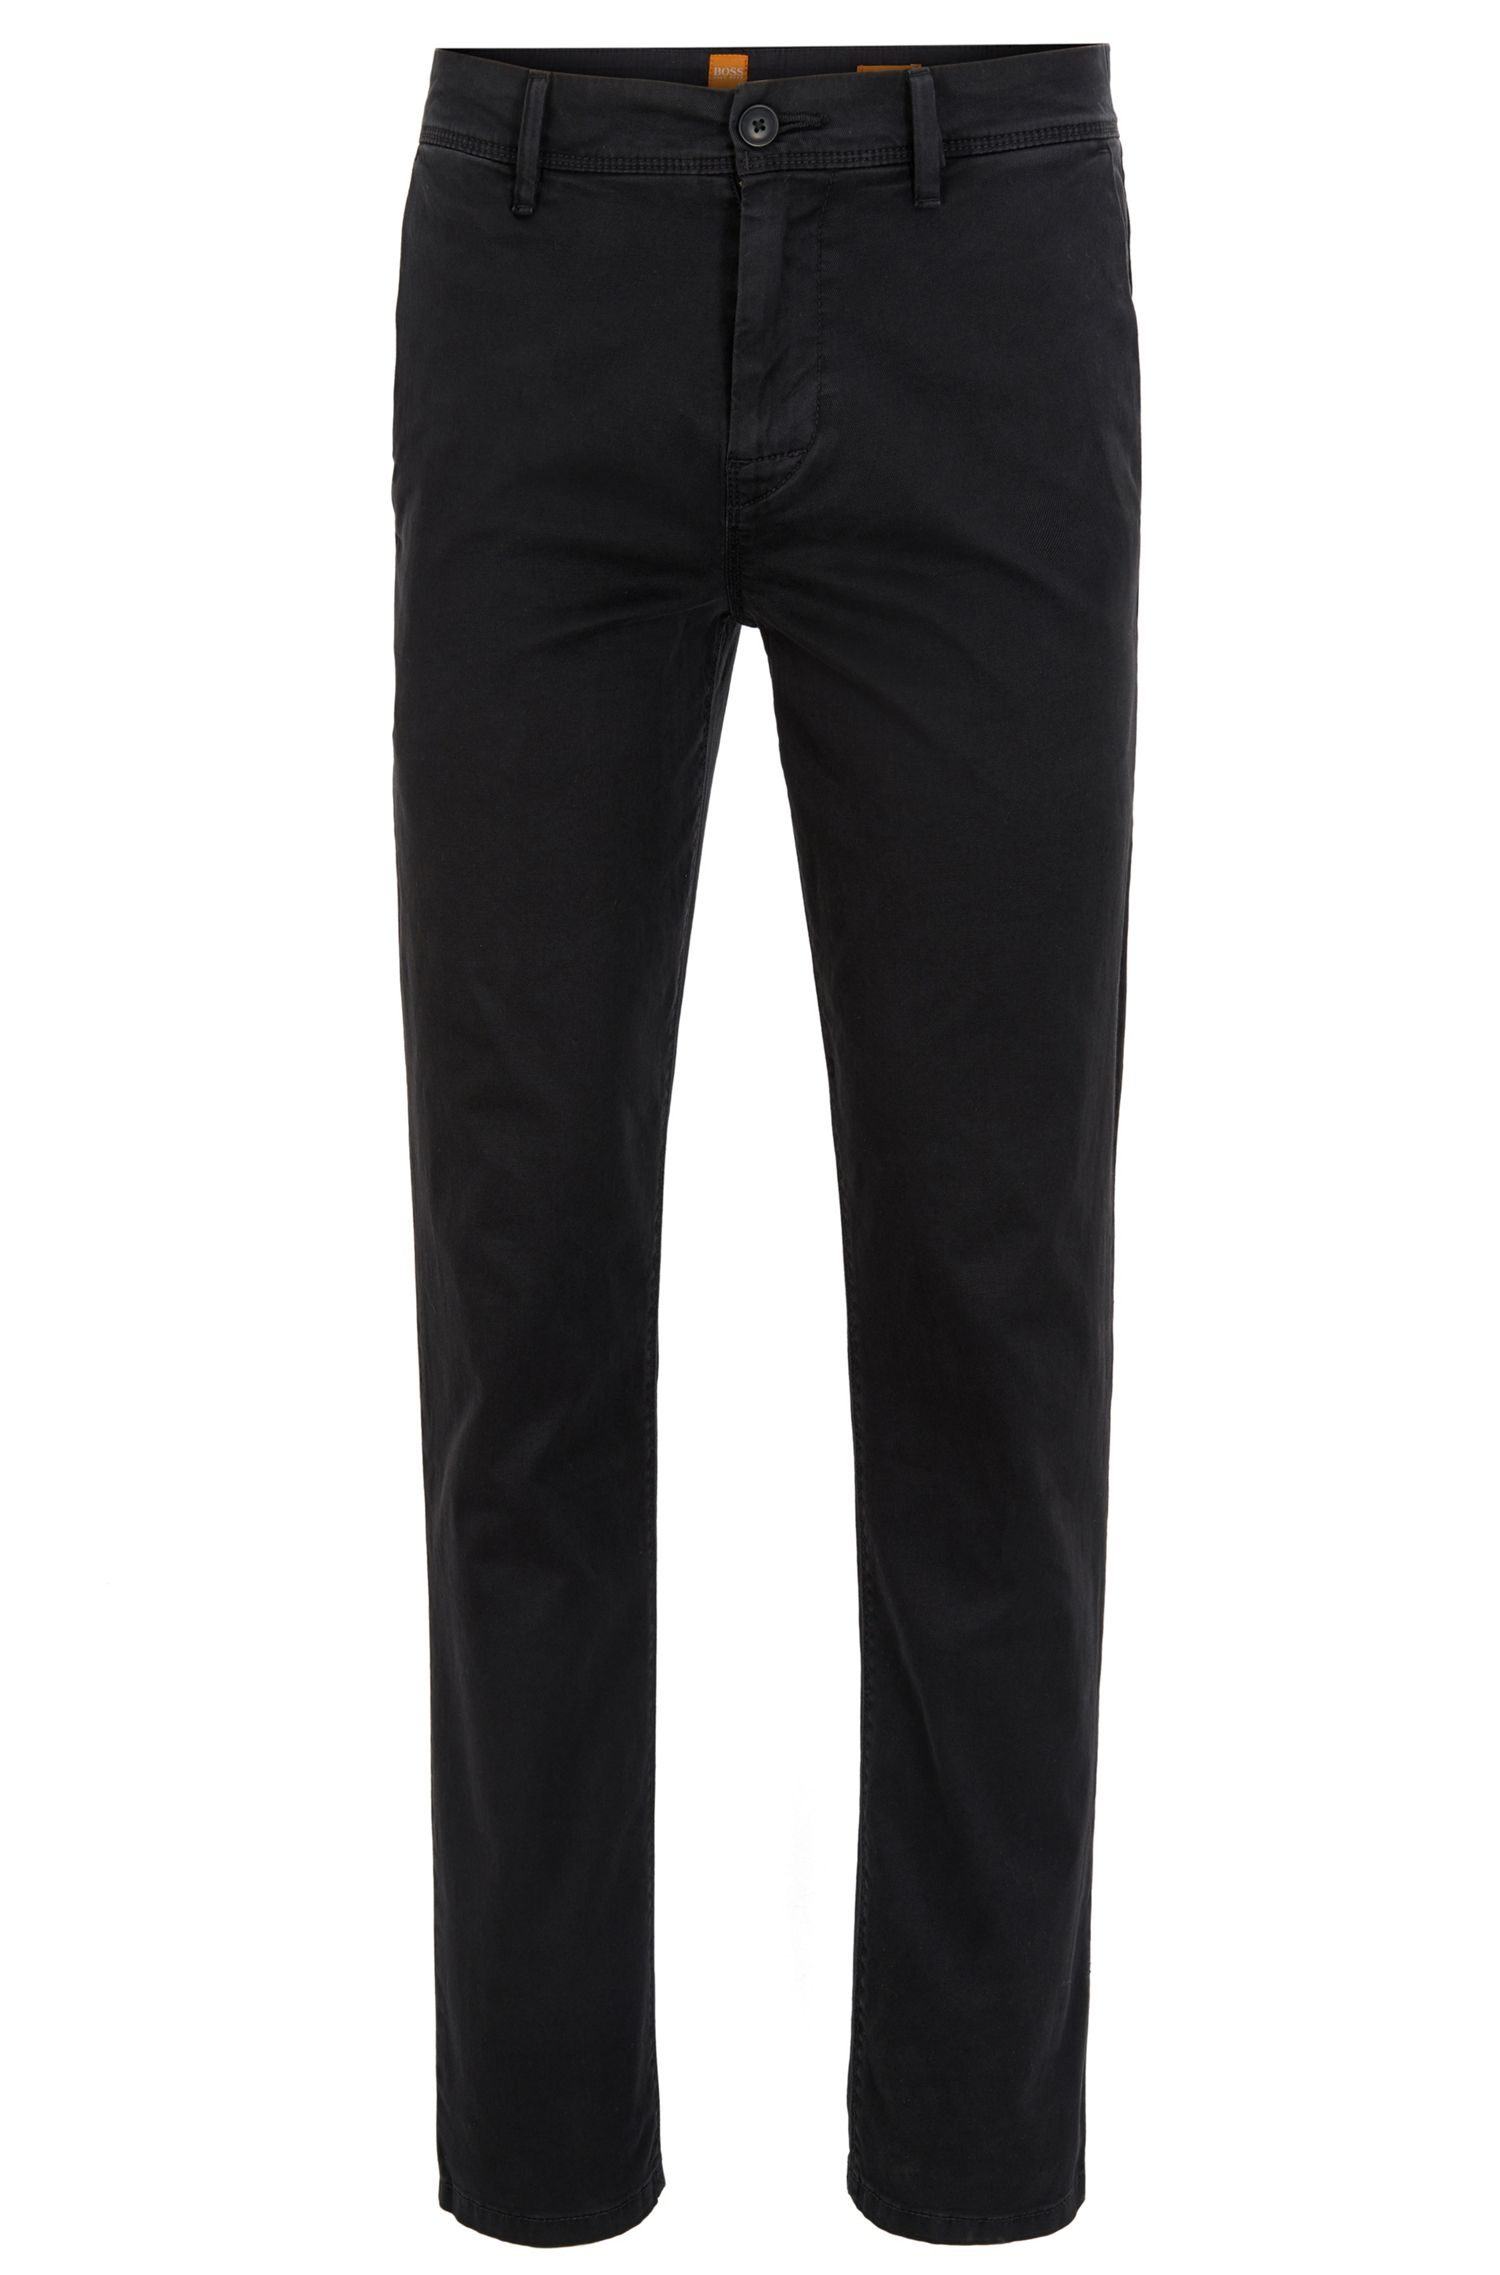 Stretch Cotton Chino Pants, Tapered Fit | Schino Tapered D, Black